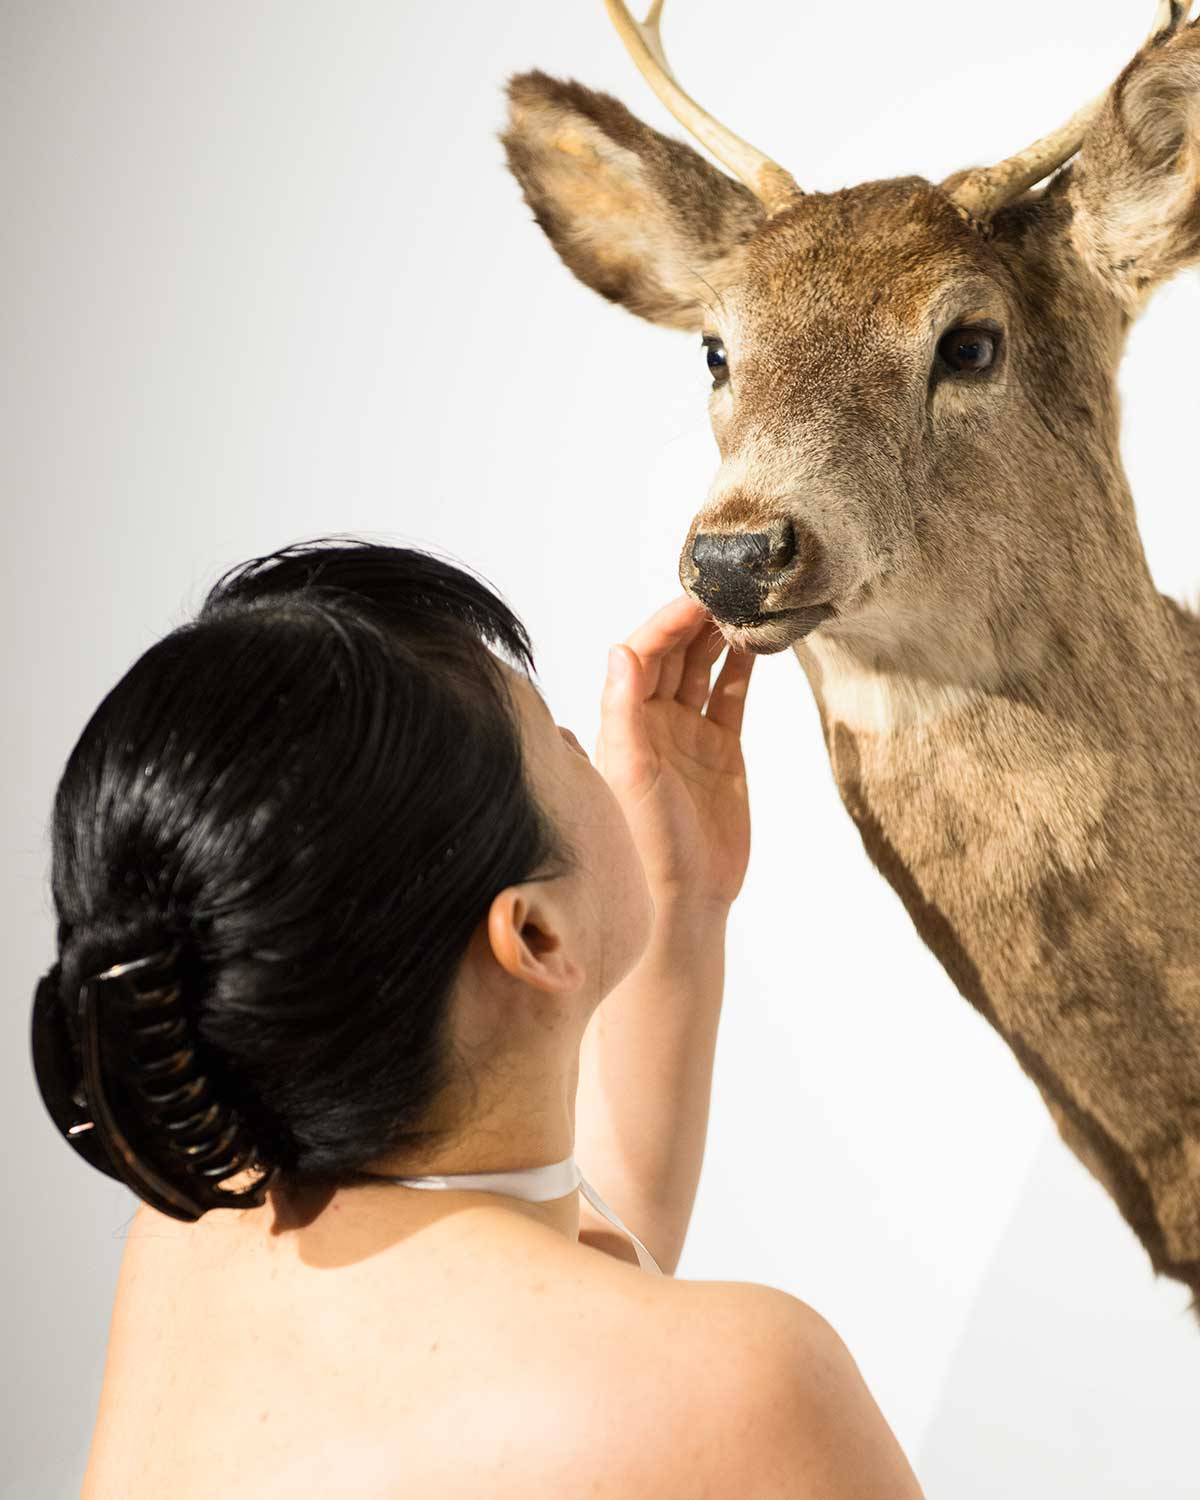 Chun Hua Catherine Dong touches the dead deer gently